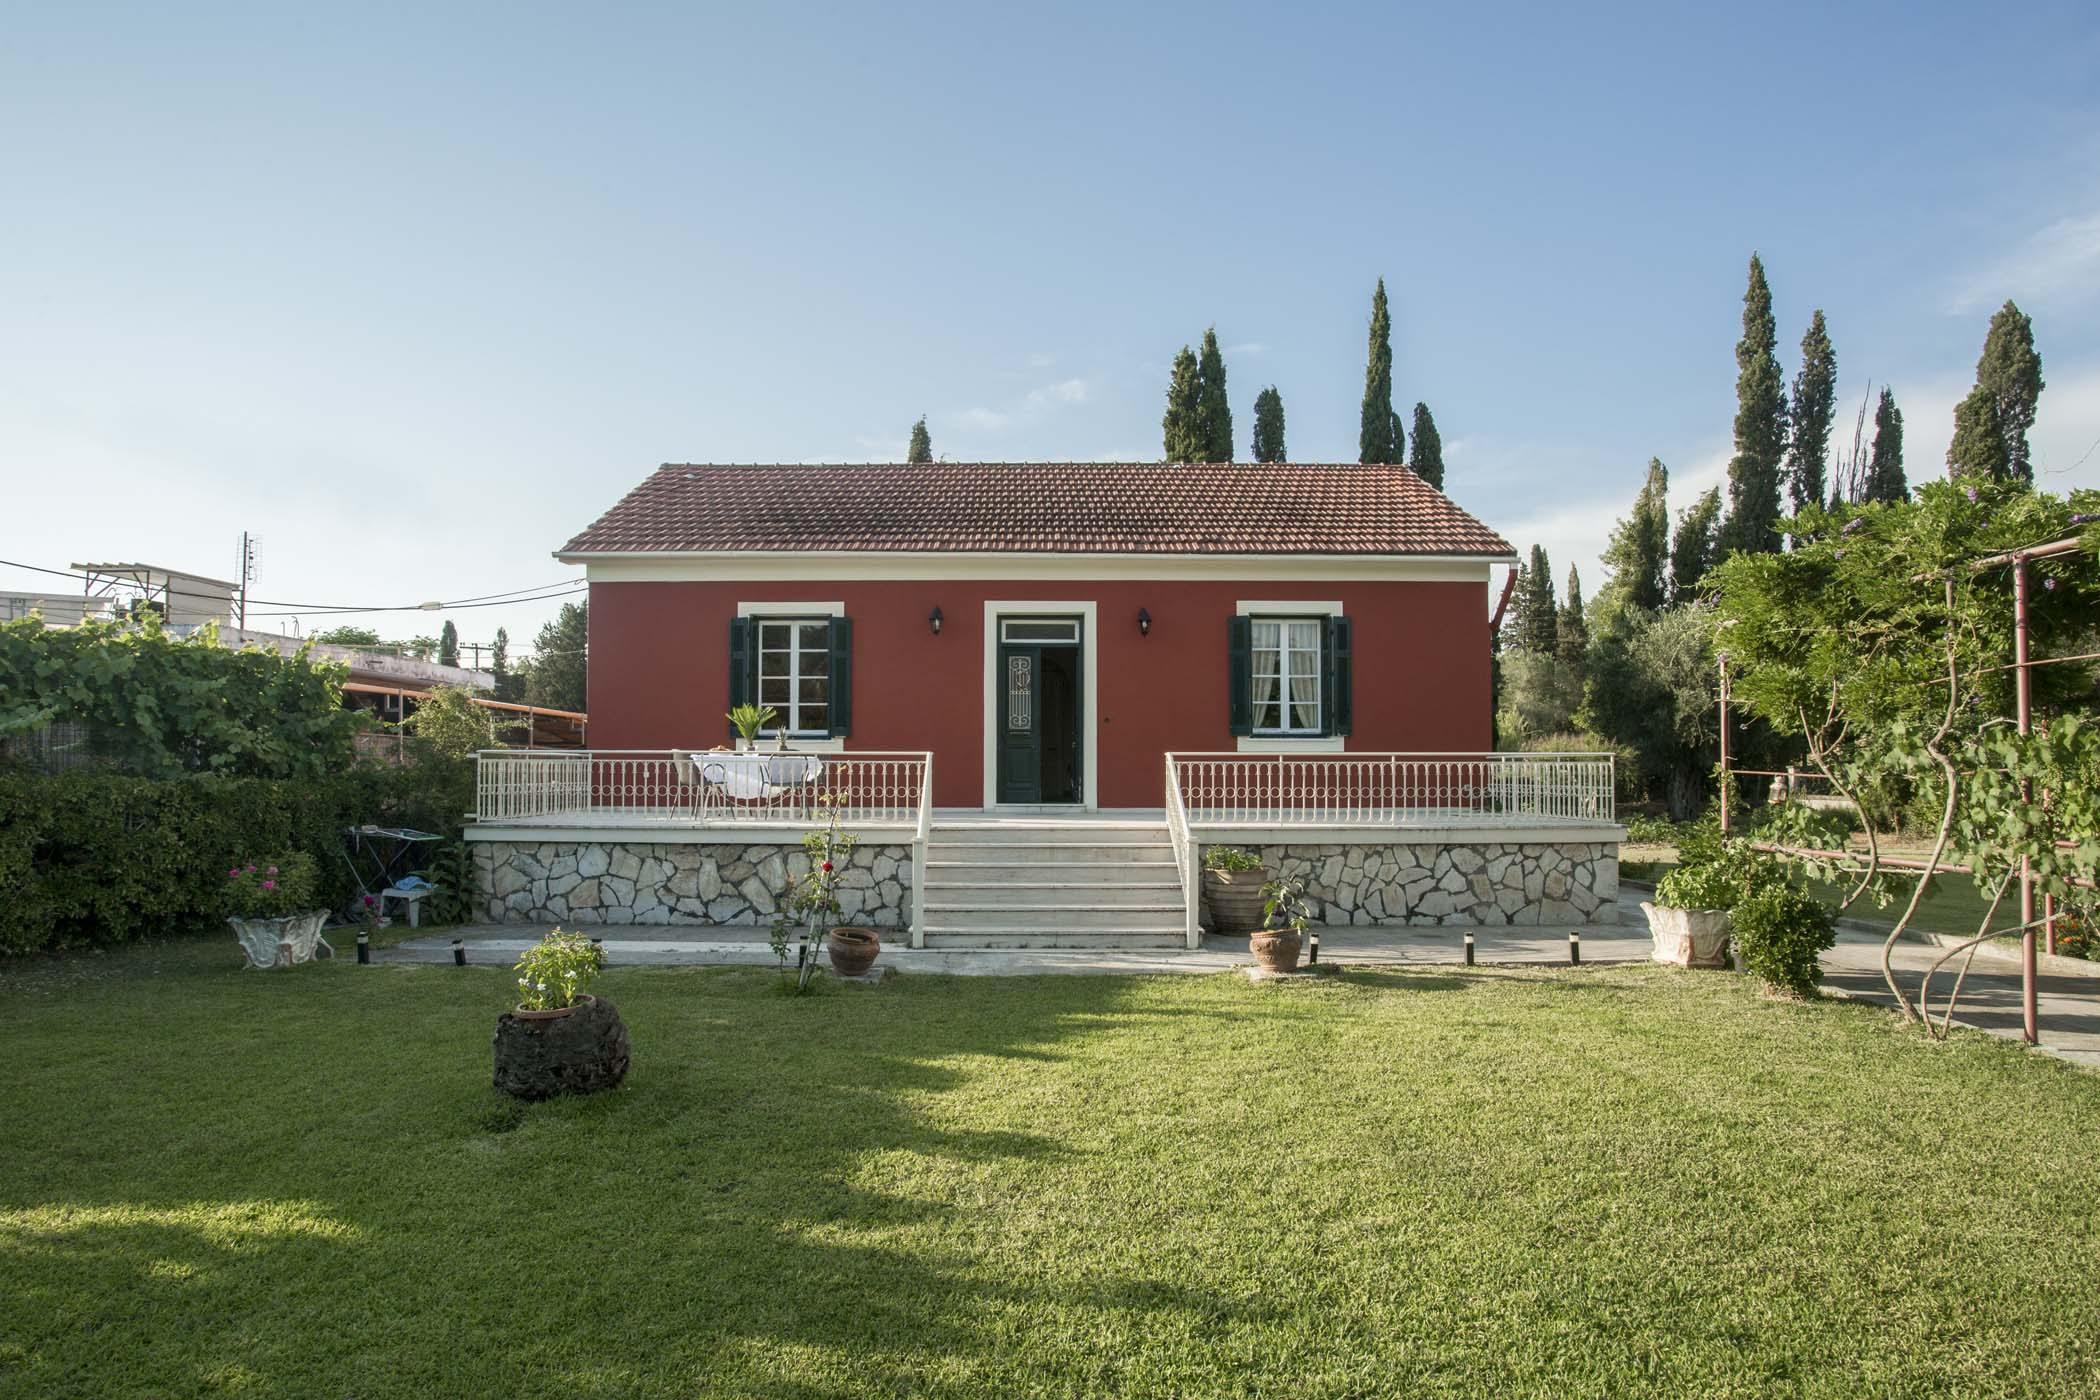 corfu holiday house - corfu house airbnb - ionian summer